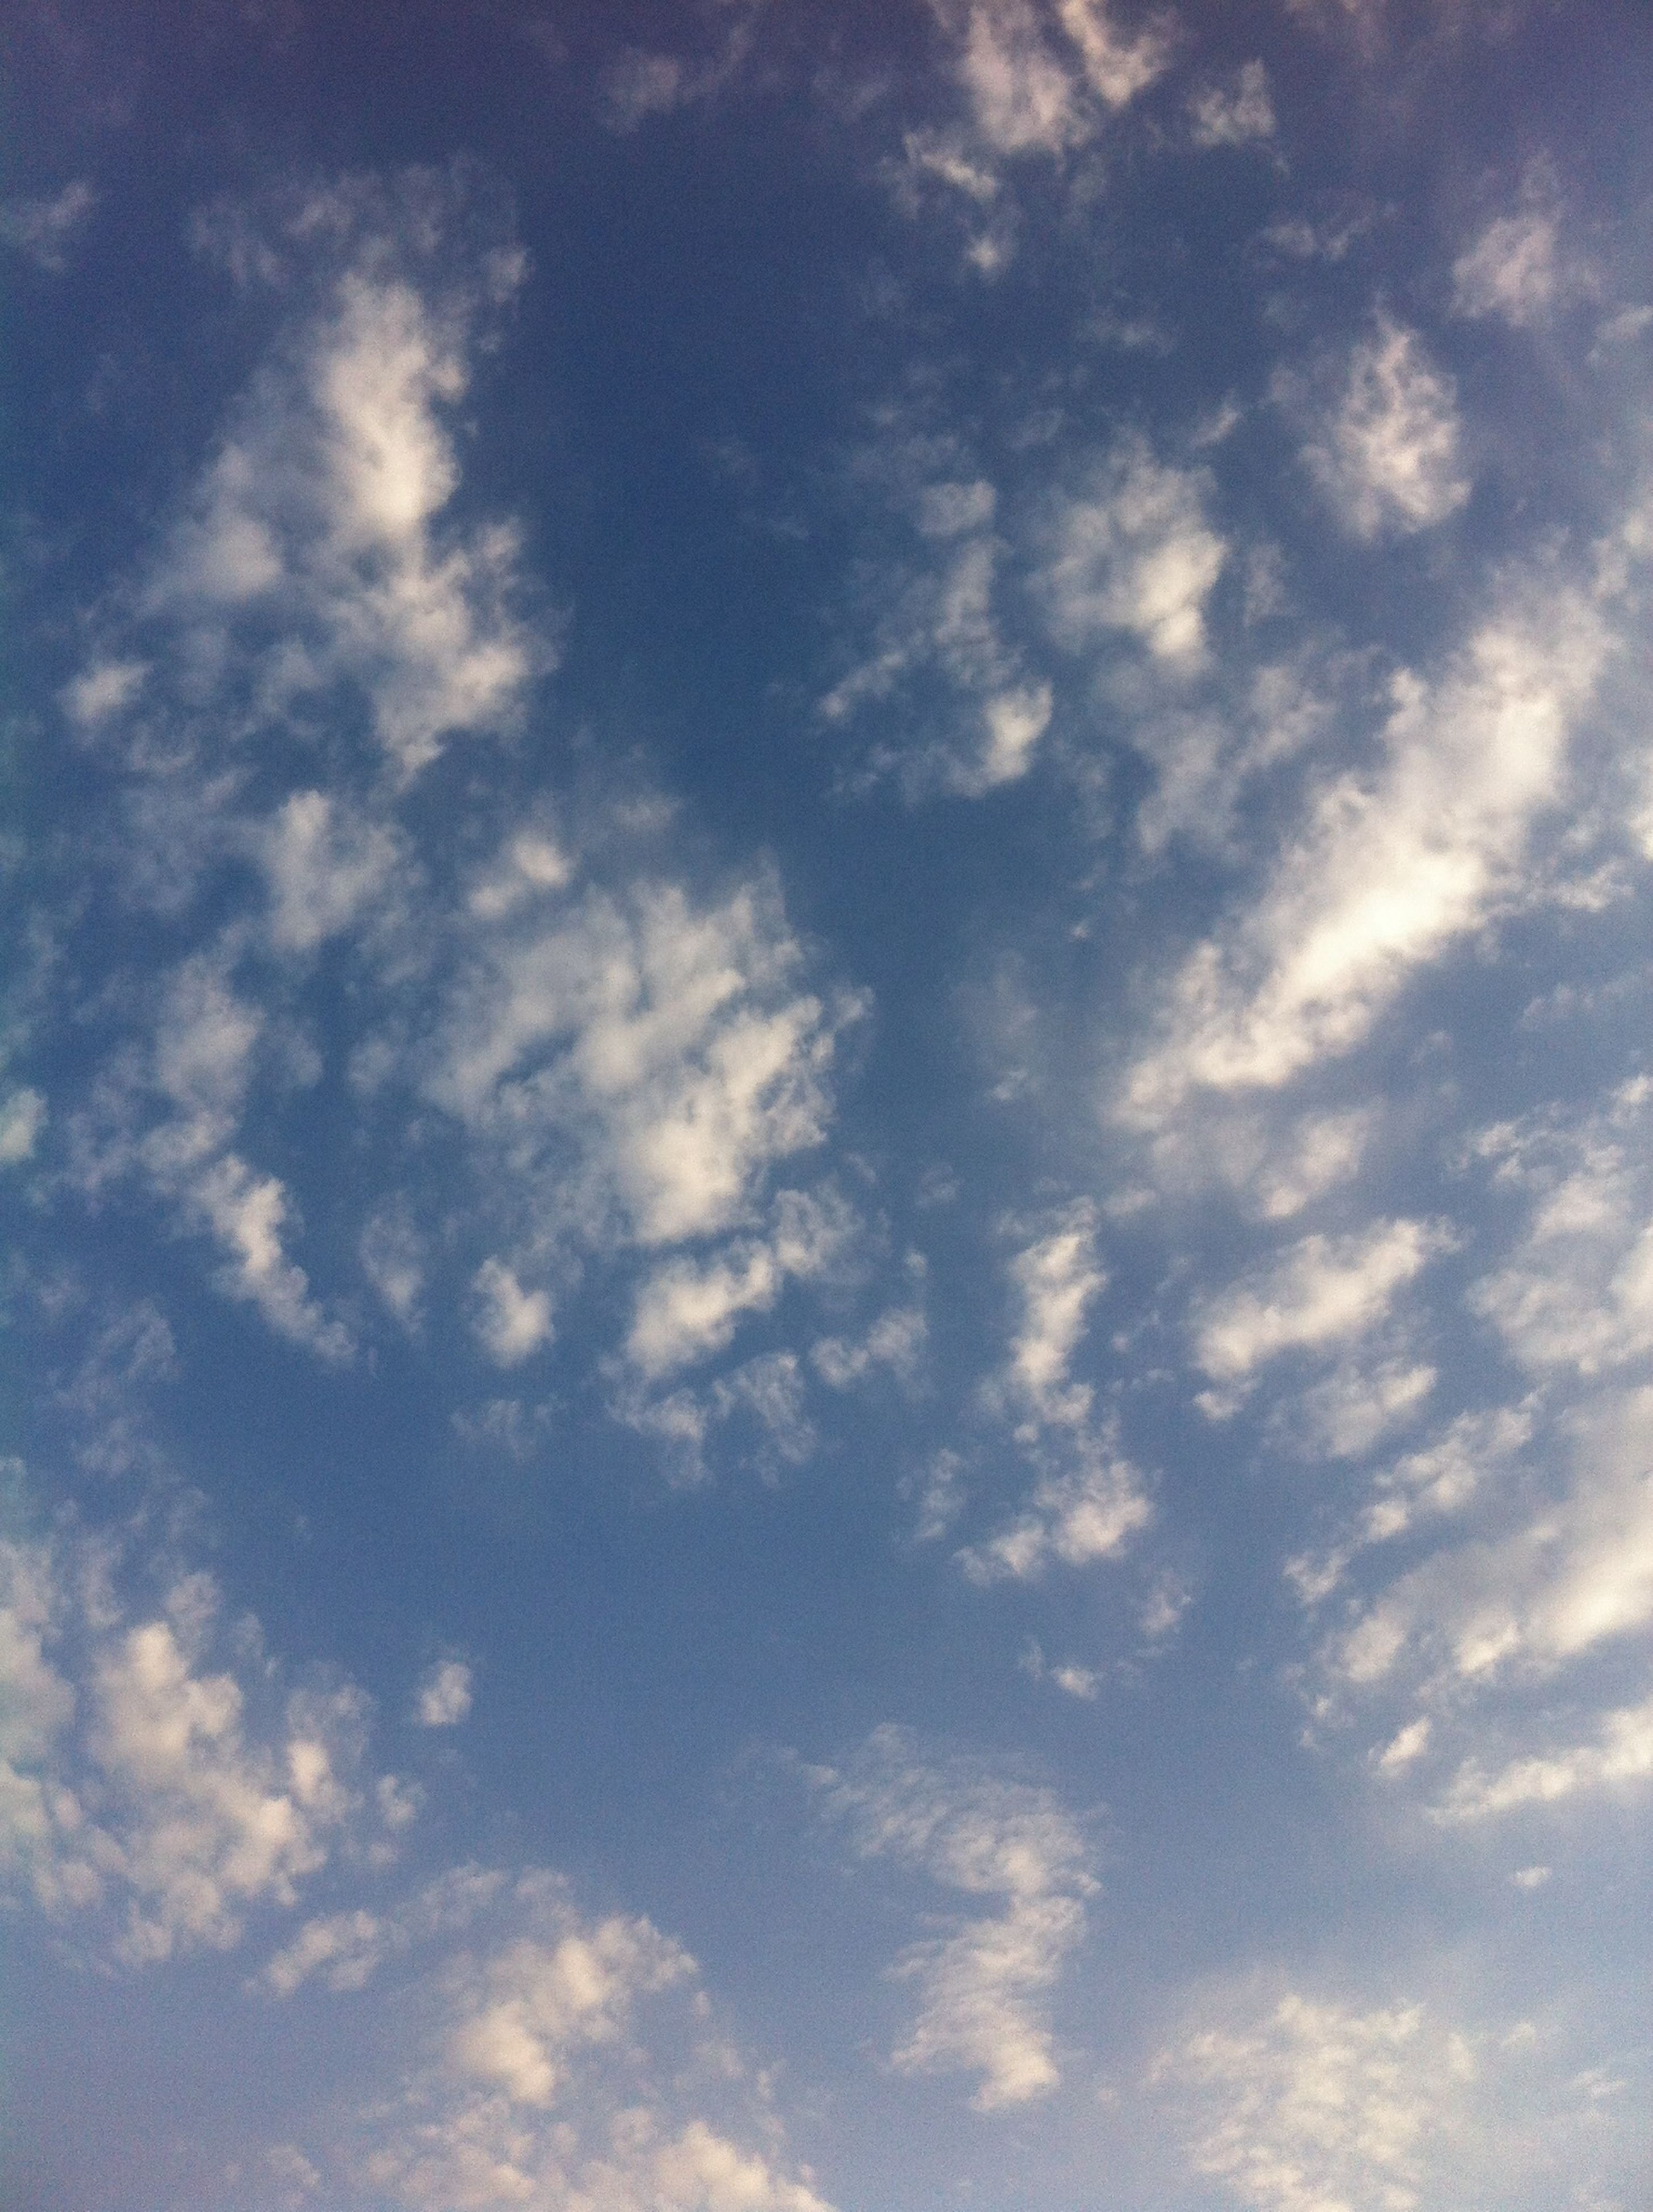 sky, low angle view, cloud - sky, sky only, beauty in nature, tranquility, backgrounds, scenics, nature, blue, full frame, tranquil scene, cloudy, cloudscape, cloud, white color, idyllic, day, outdoors, no people